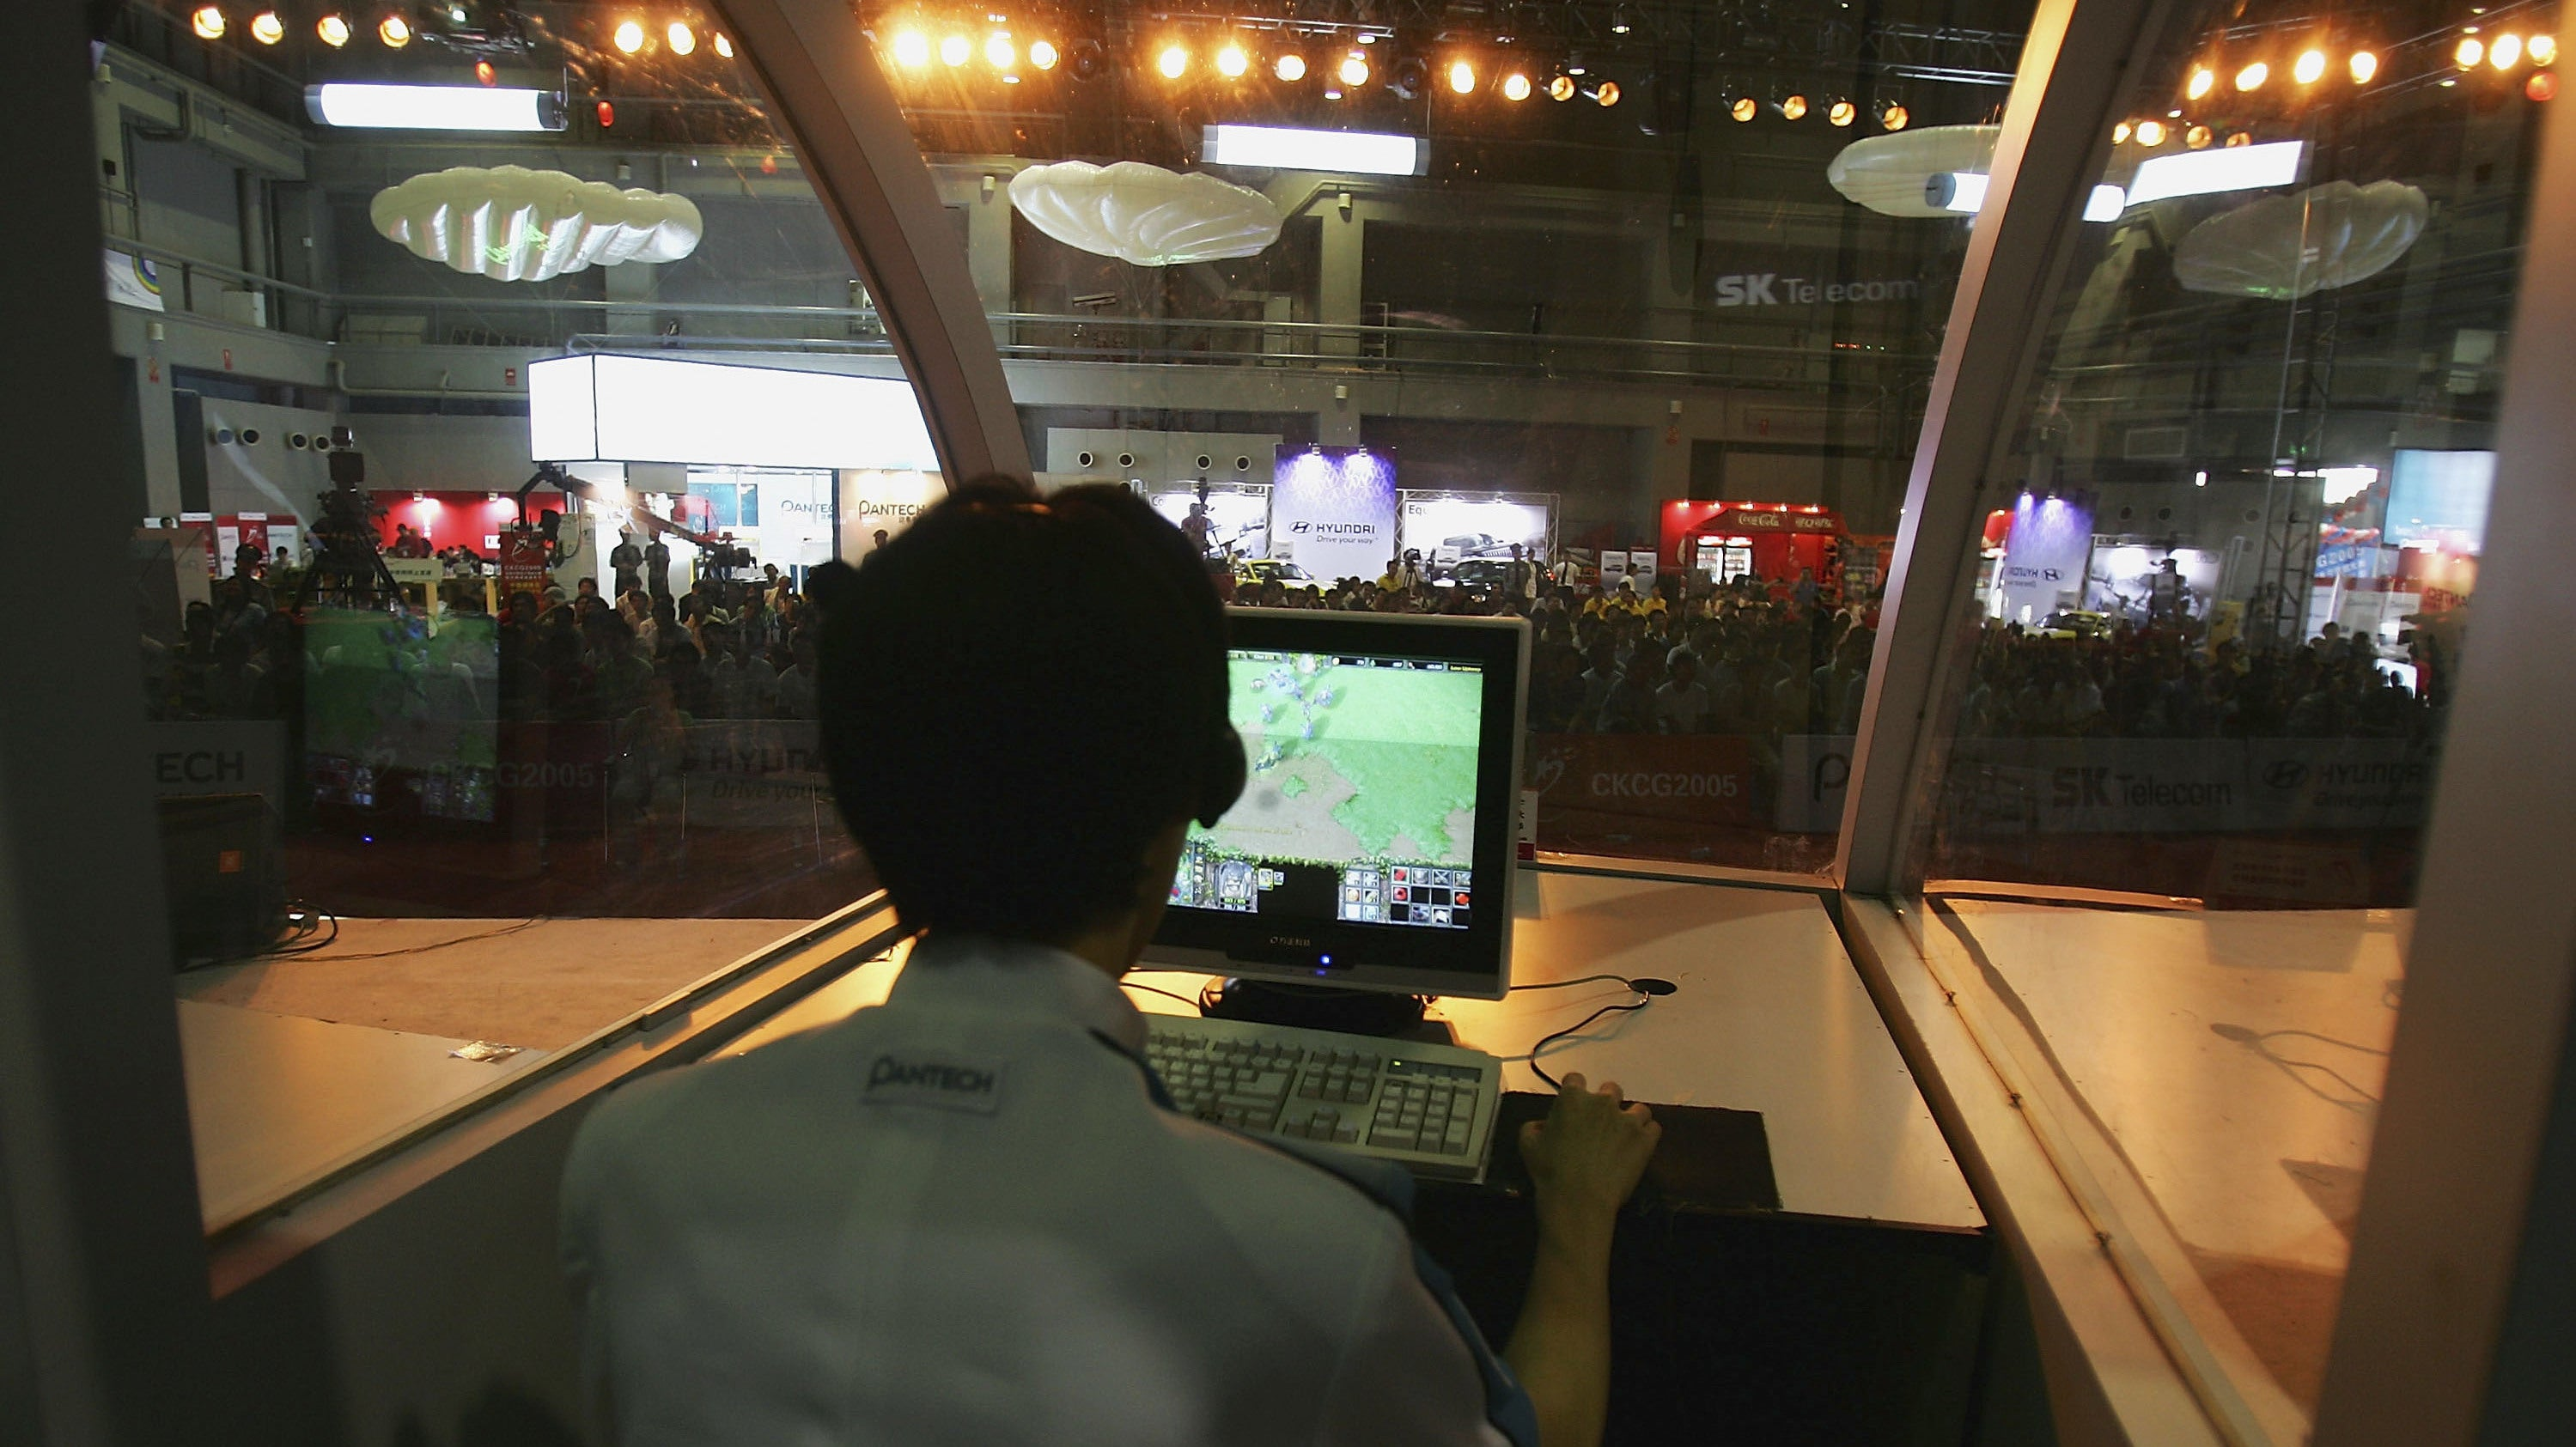 Report: China's Censors Stop Approving New Video Game Titles Amid Industry Crackdown